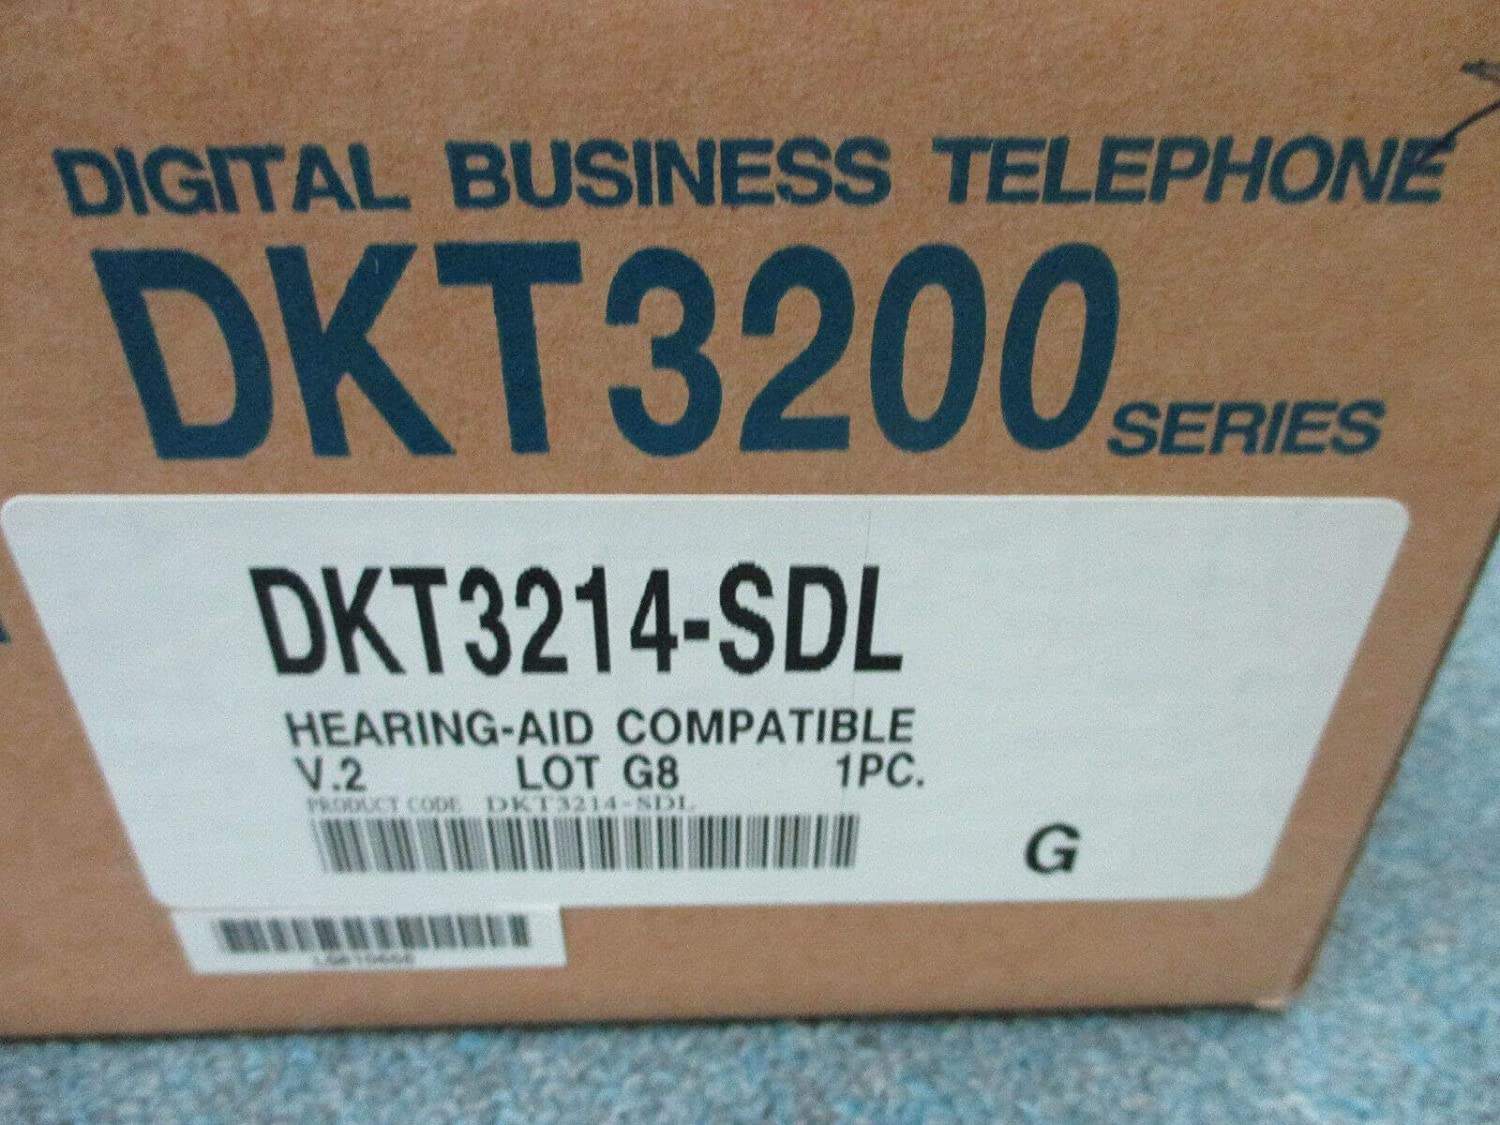 Toshiba Strata CIX CTX DKT 3214 Max 88% OFF SDL Large-scale sale Display Tele Button 14 Large